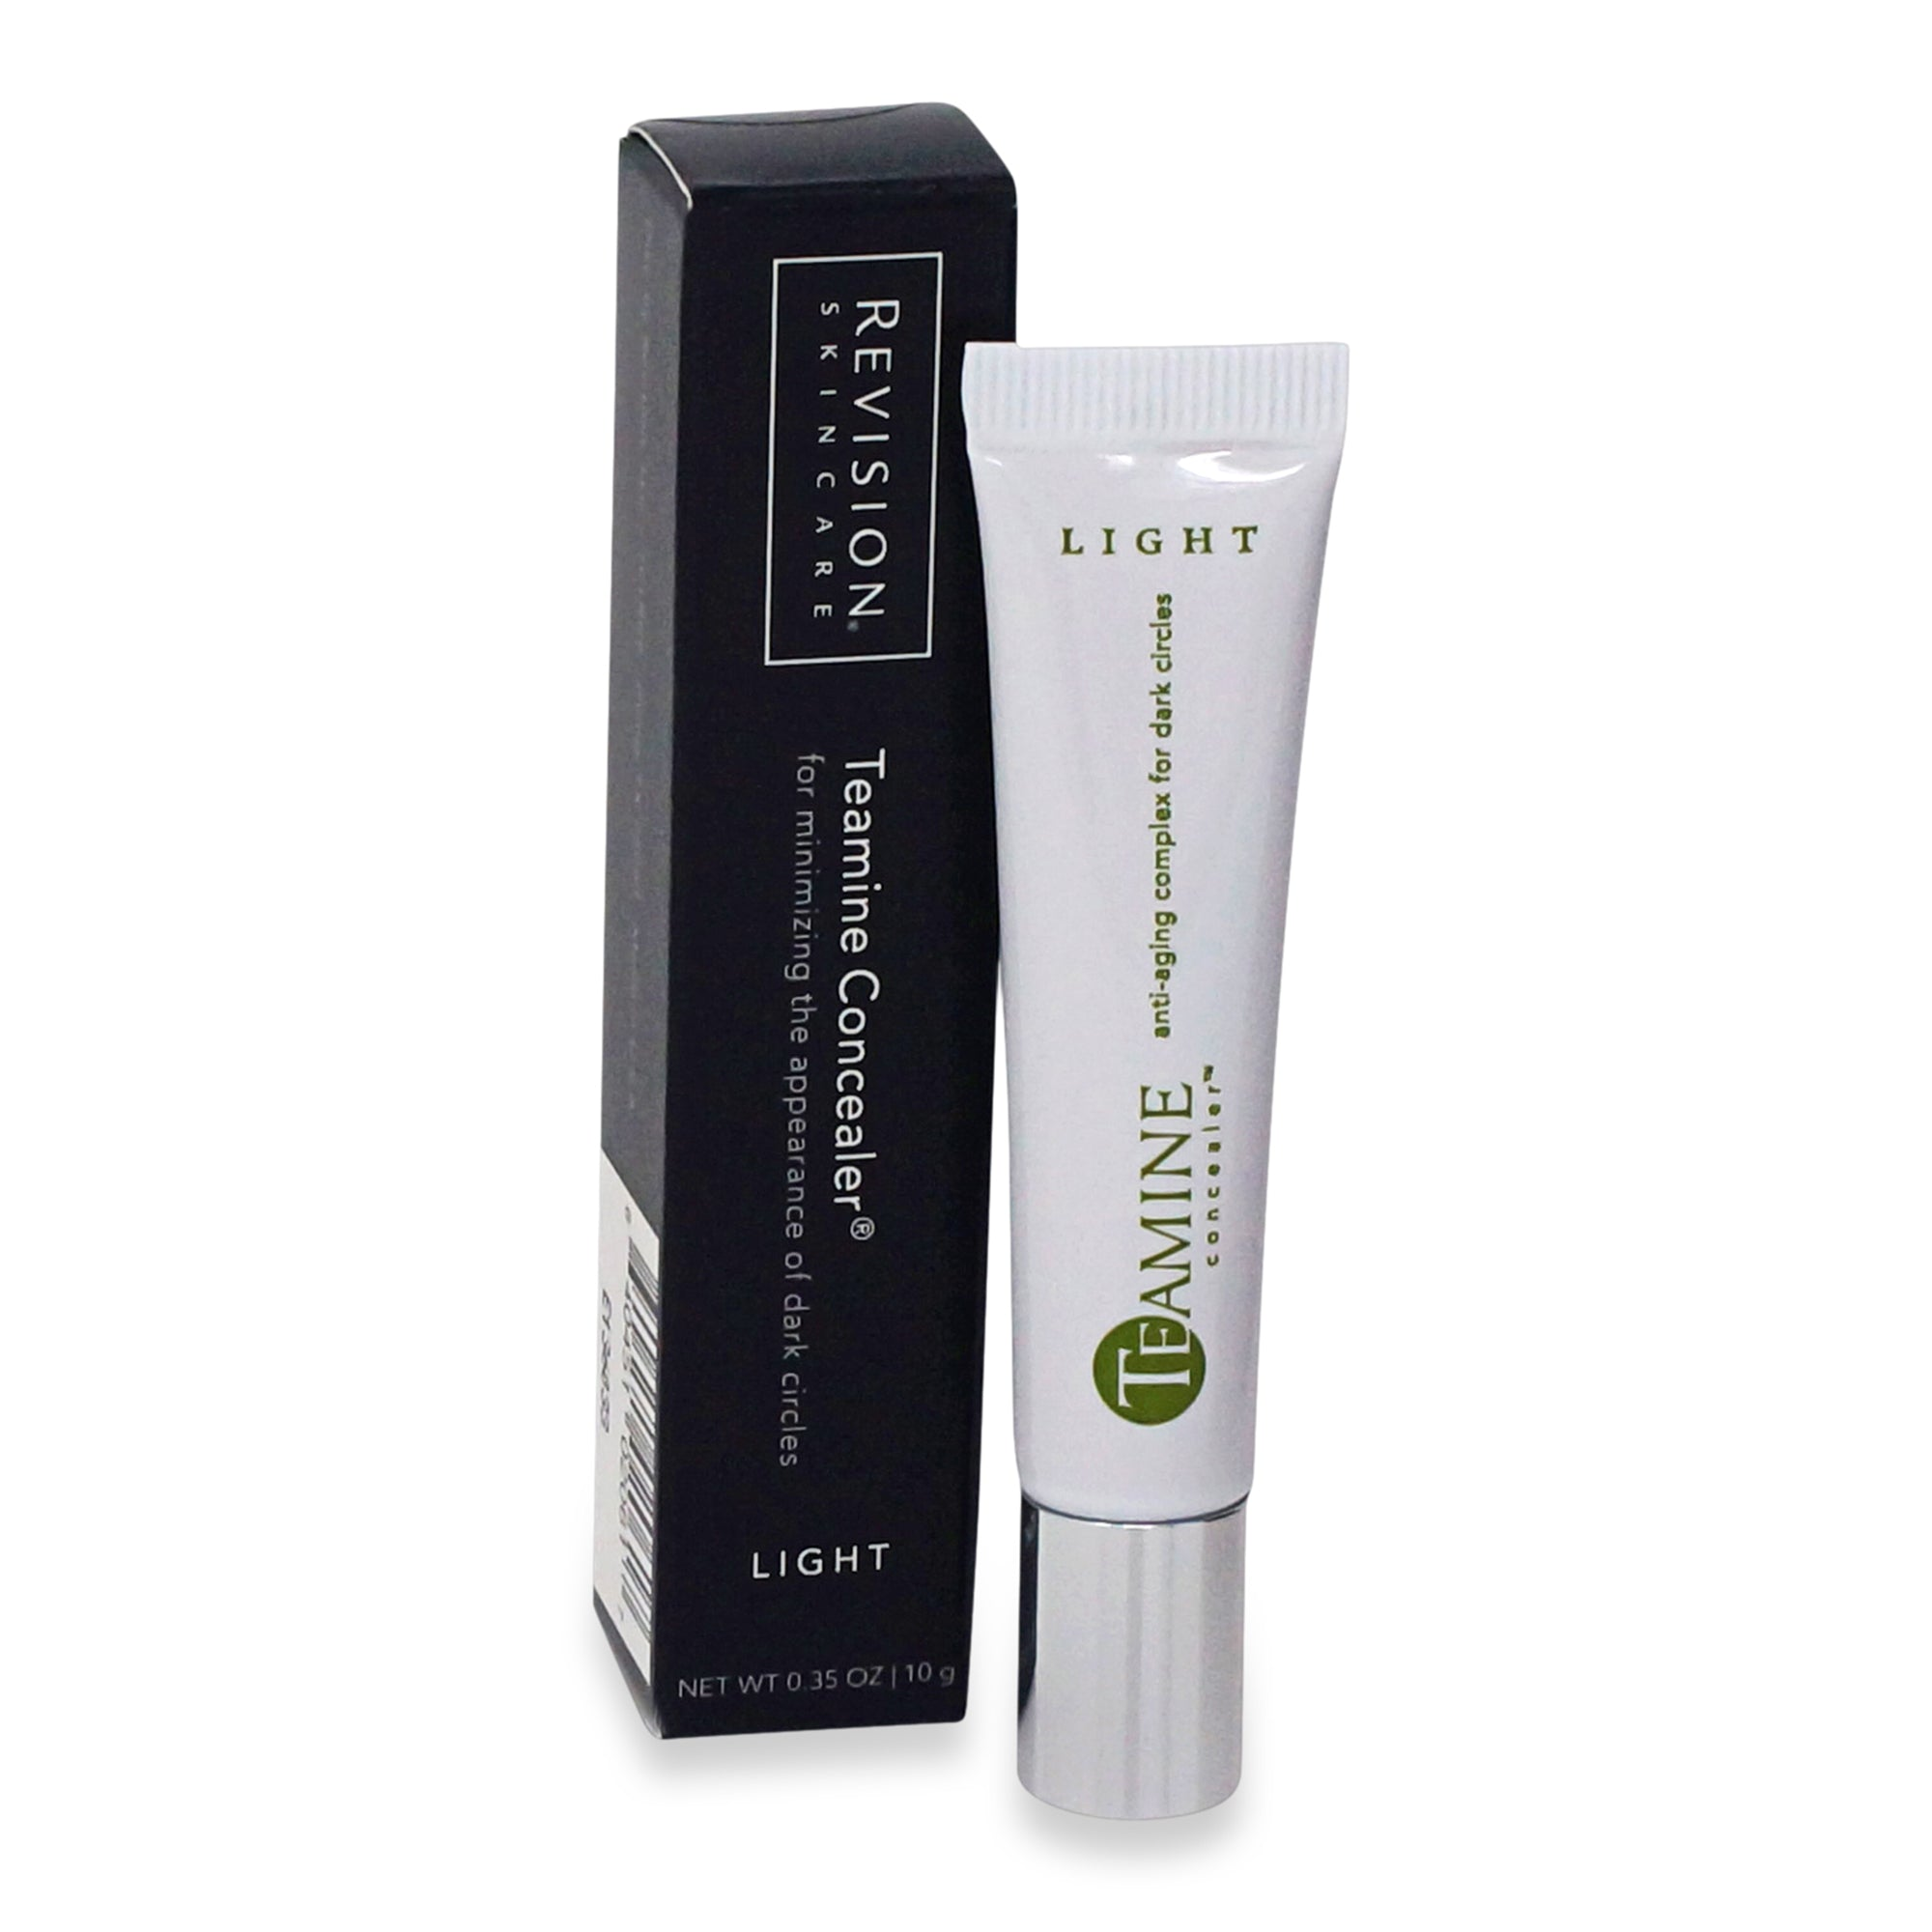 REVISION ~ TEAMINE CONCEALER LIGHT ~ 0.35 OZ TUBE